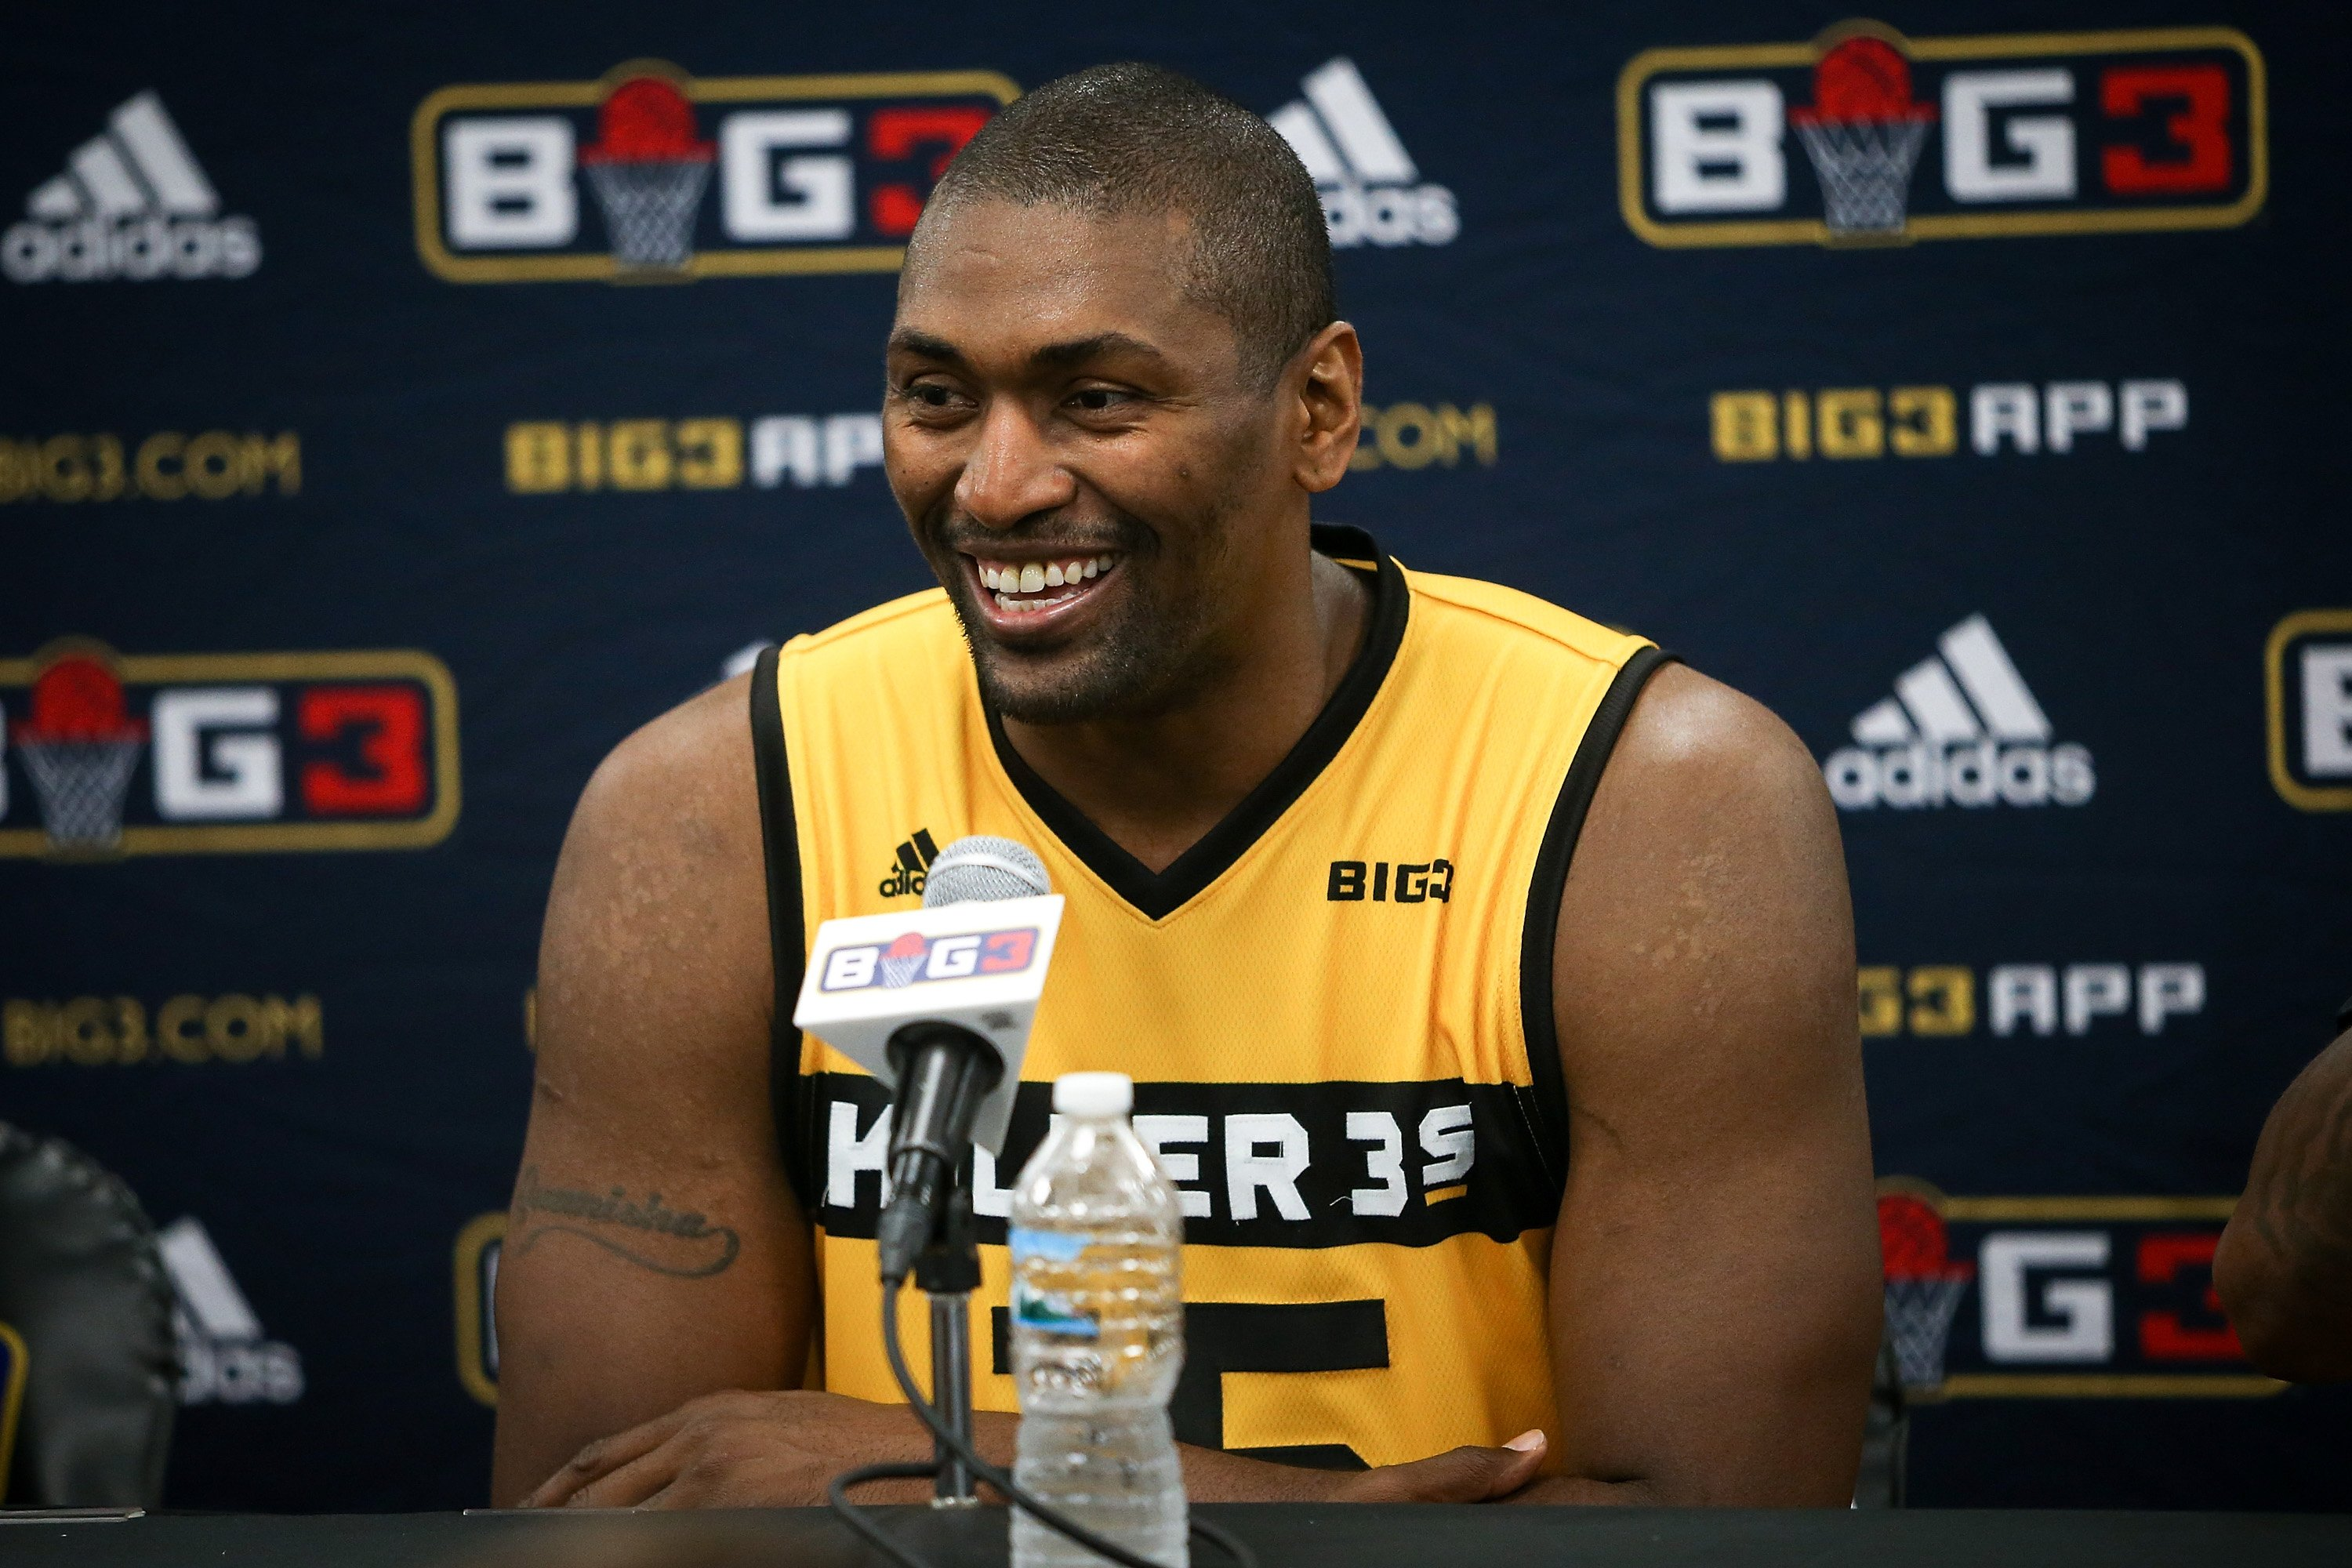 Metta World Peace speaks at United Center on June 29, 2018 | Photo: Getty Images